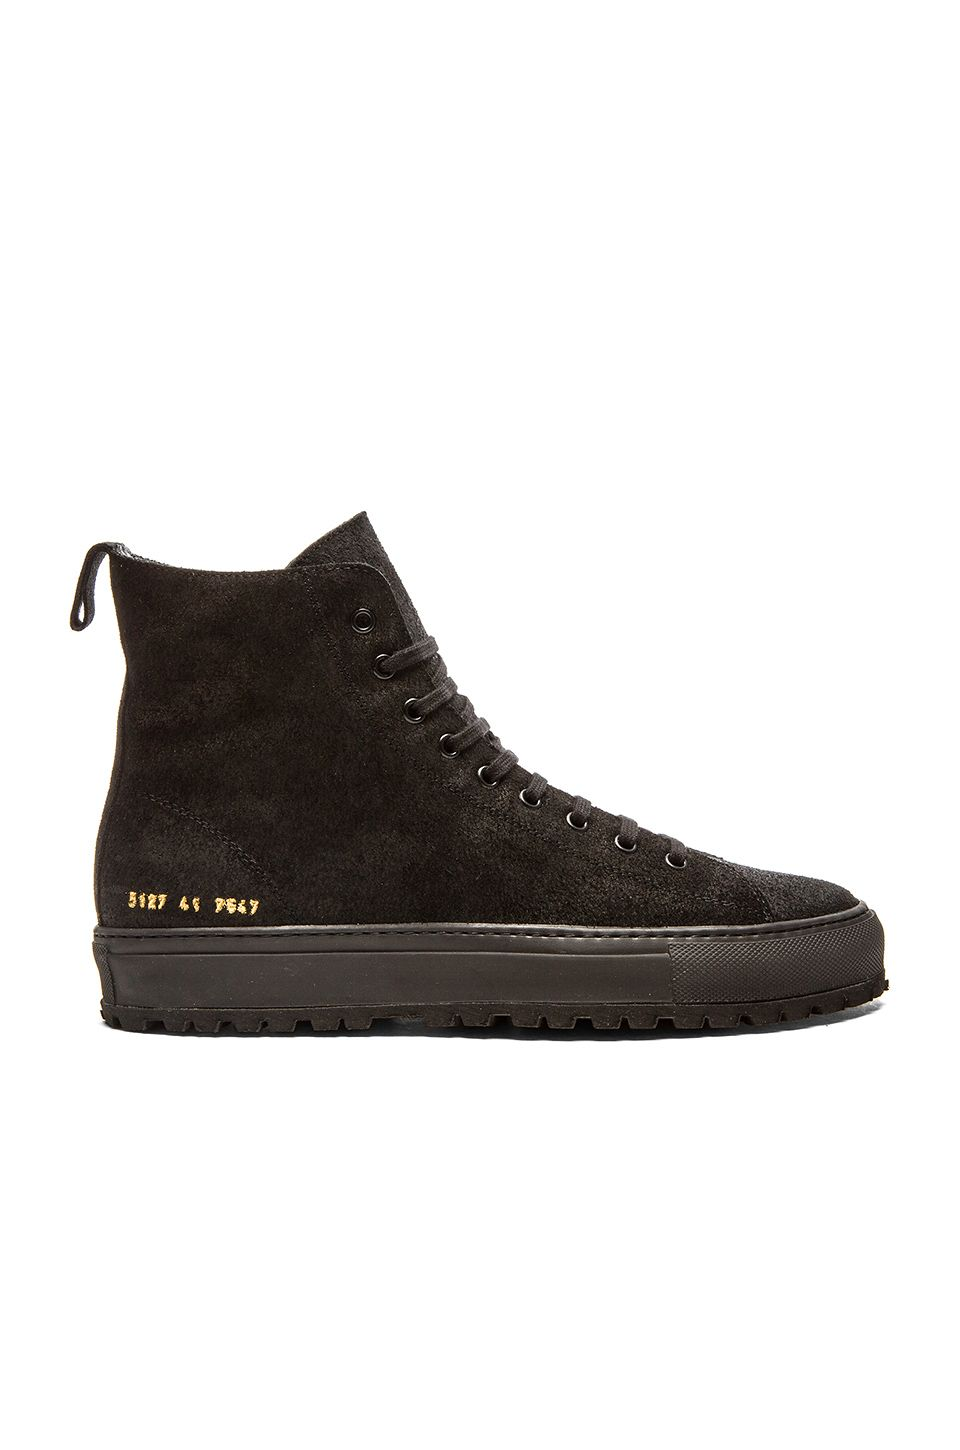 Common Projects Tournament High Lug in Black